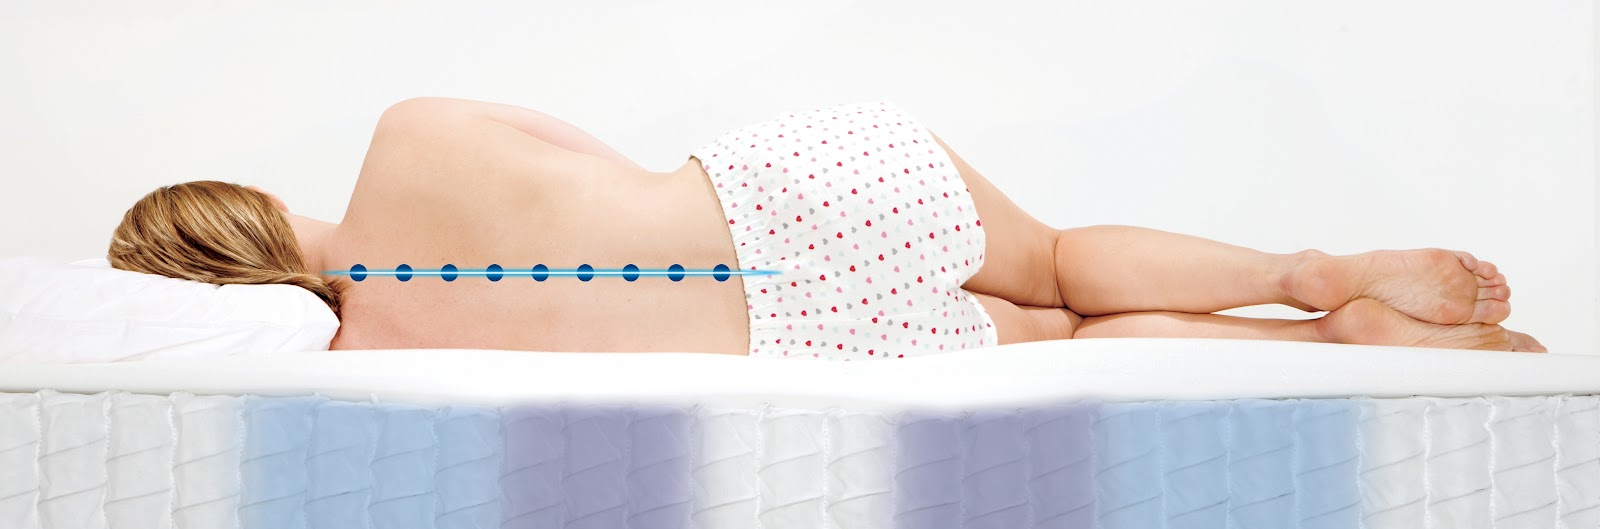 On a good mattress, your straight line of the spine is maintained. Your contours of shoulders and pelvis / hips are taken care of. A good mattress doesn't push you up or sink you in. (Pic source: http://www.ogyik.hu )